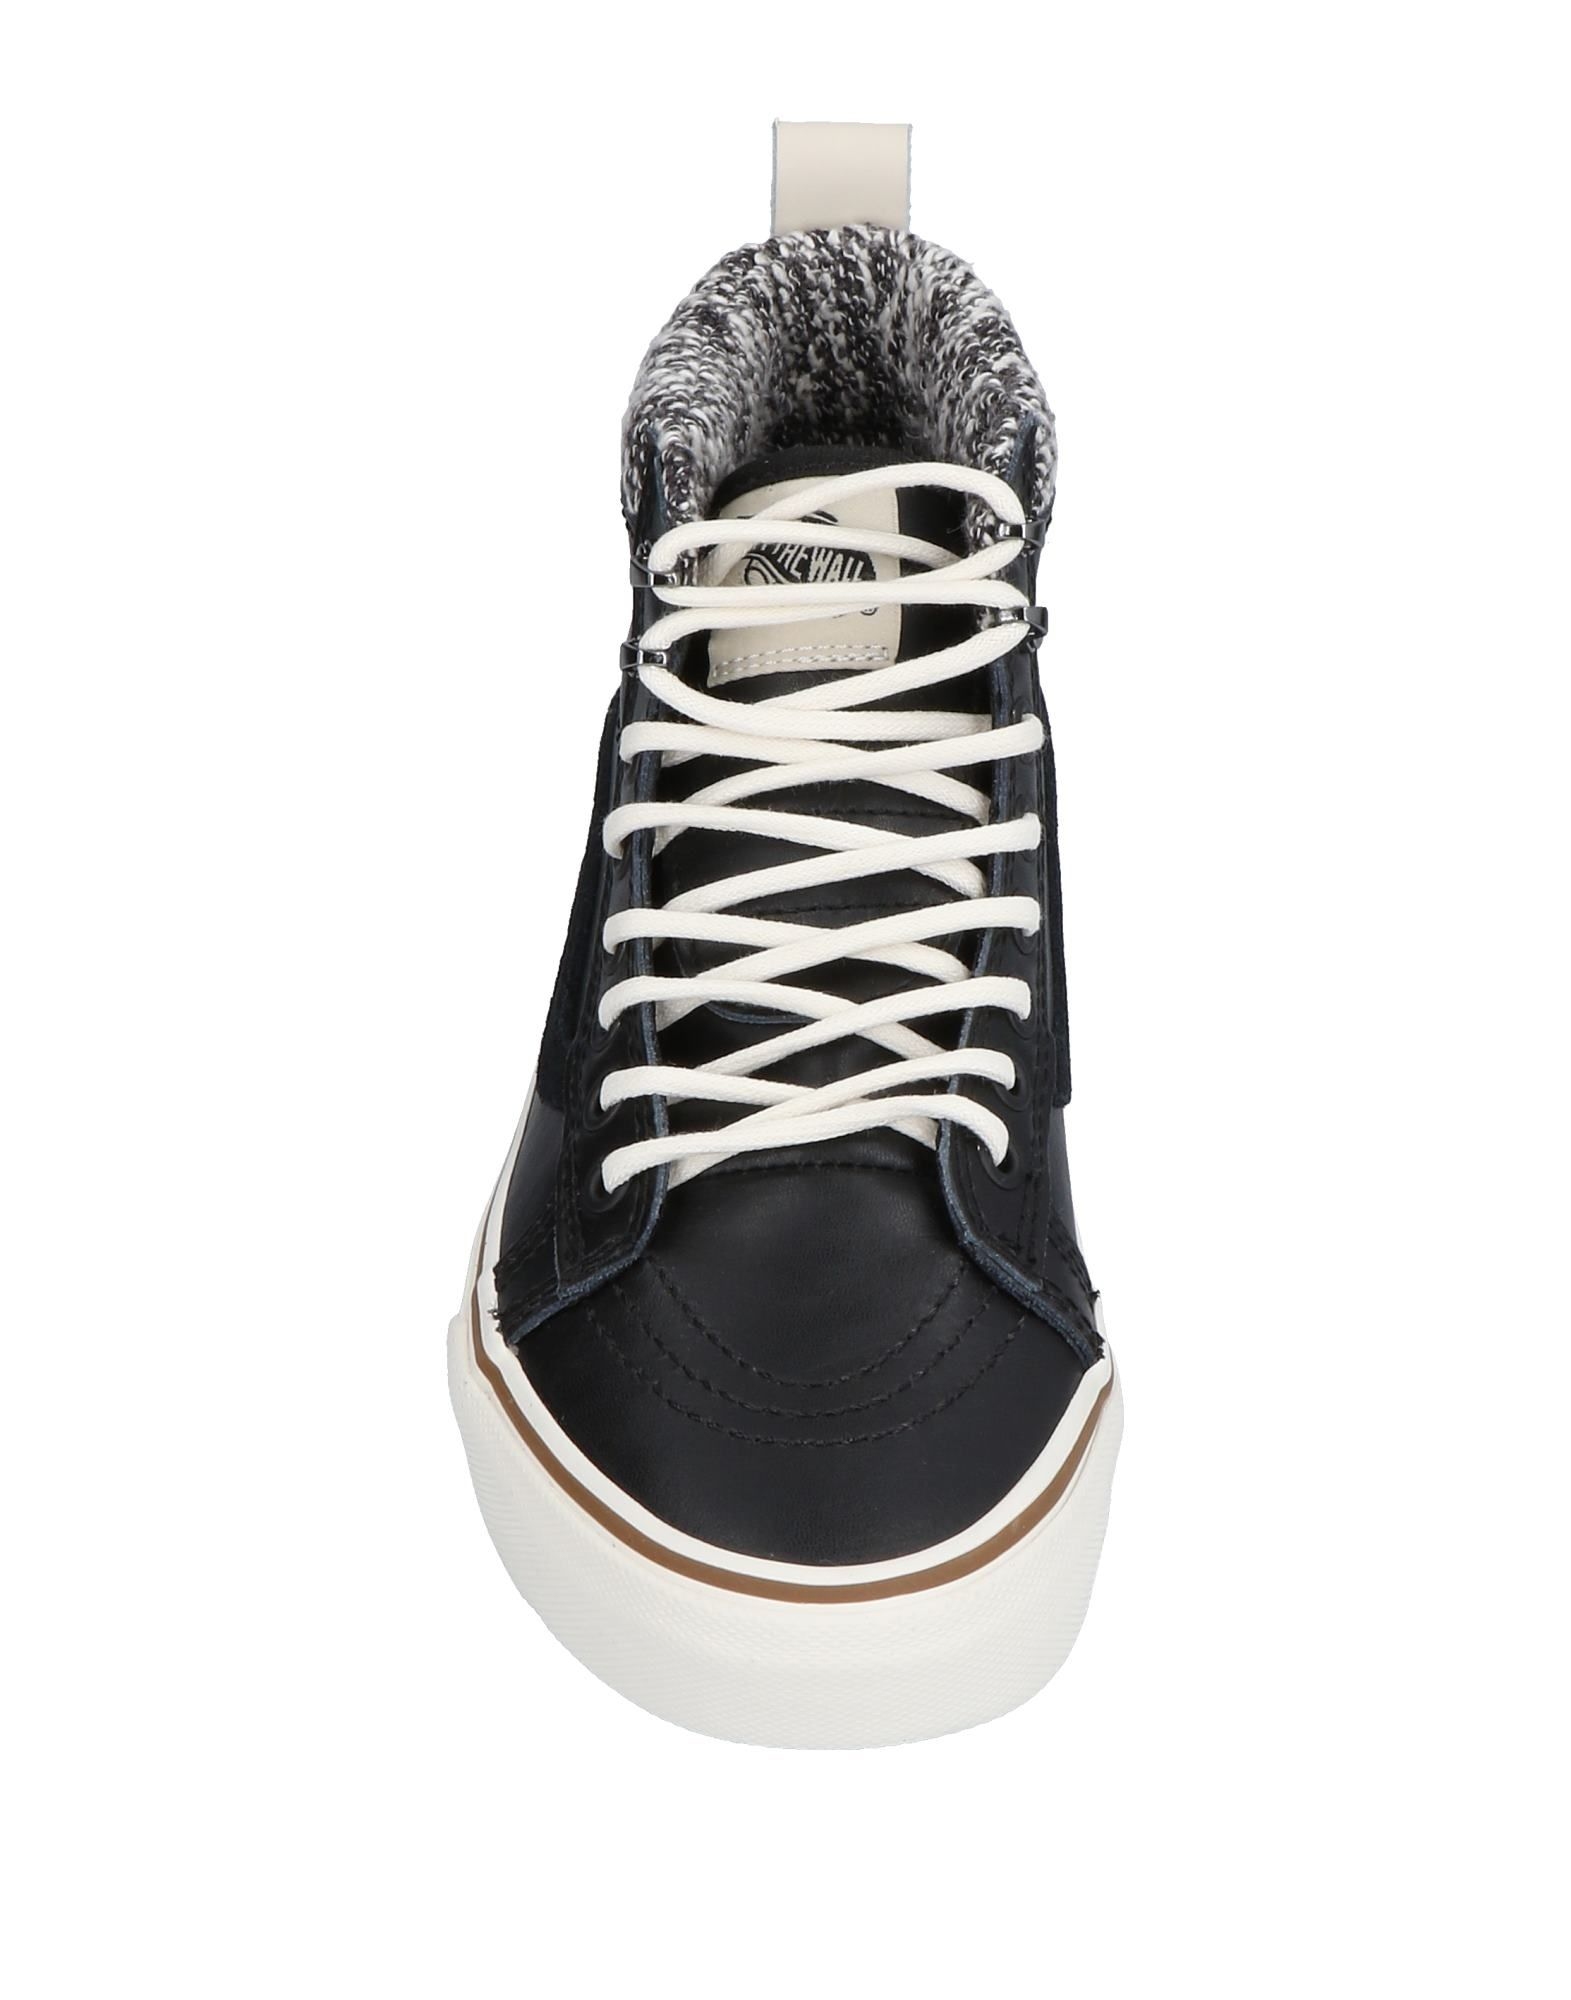 Vans Sneakers - Women Vans Sneakers online on 11493863RG  United Kingdom - 11493863RG on f3cd47